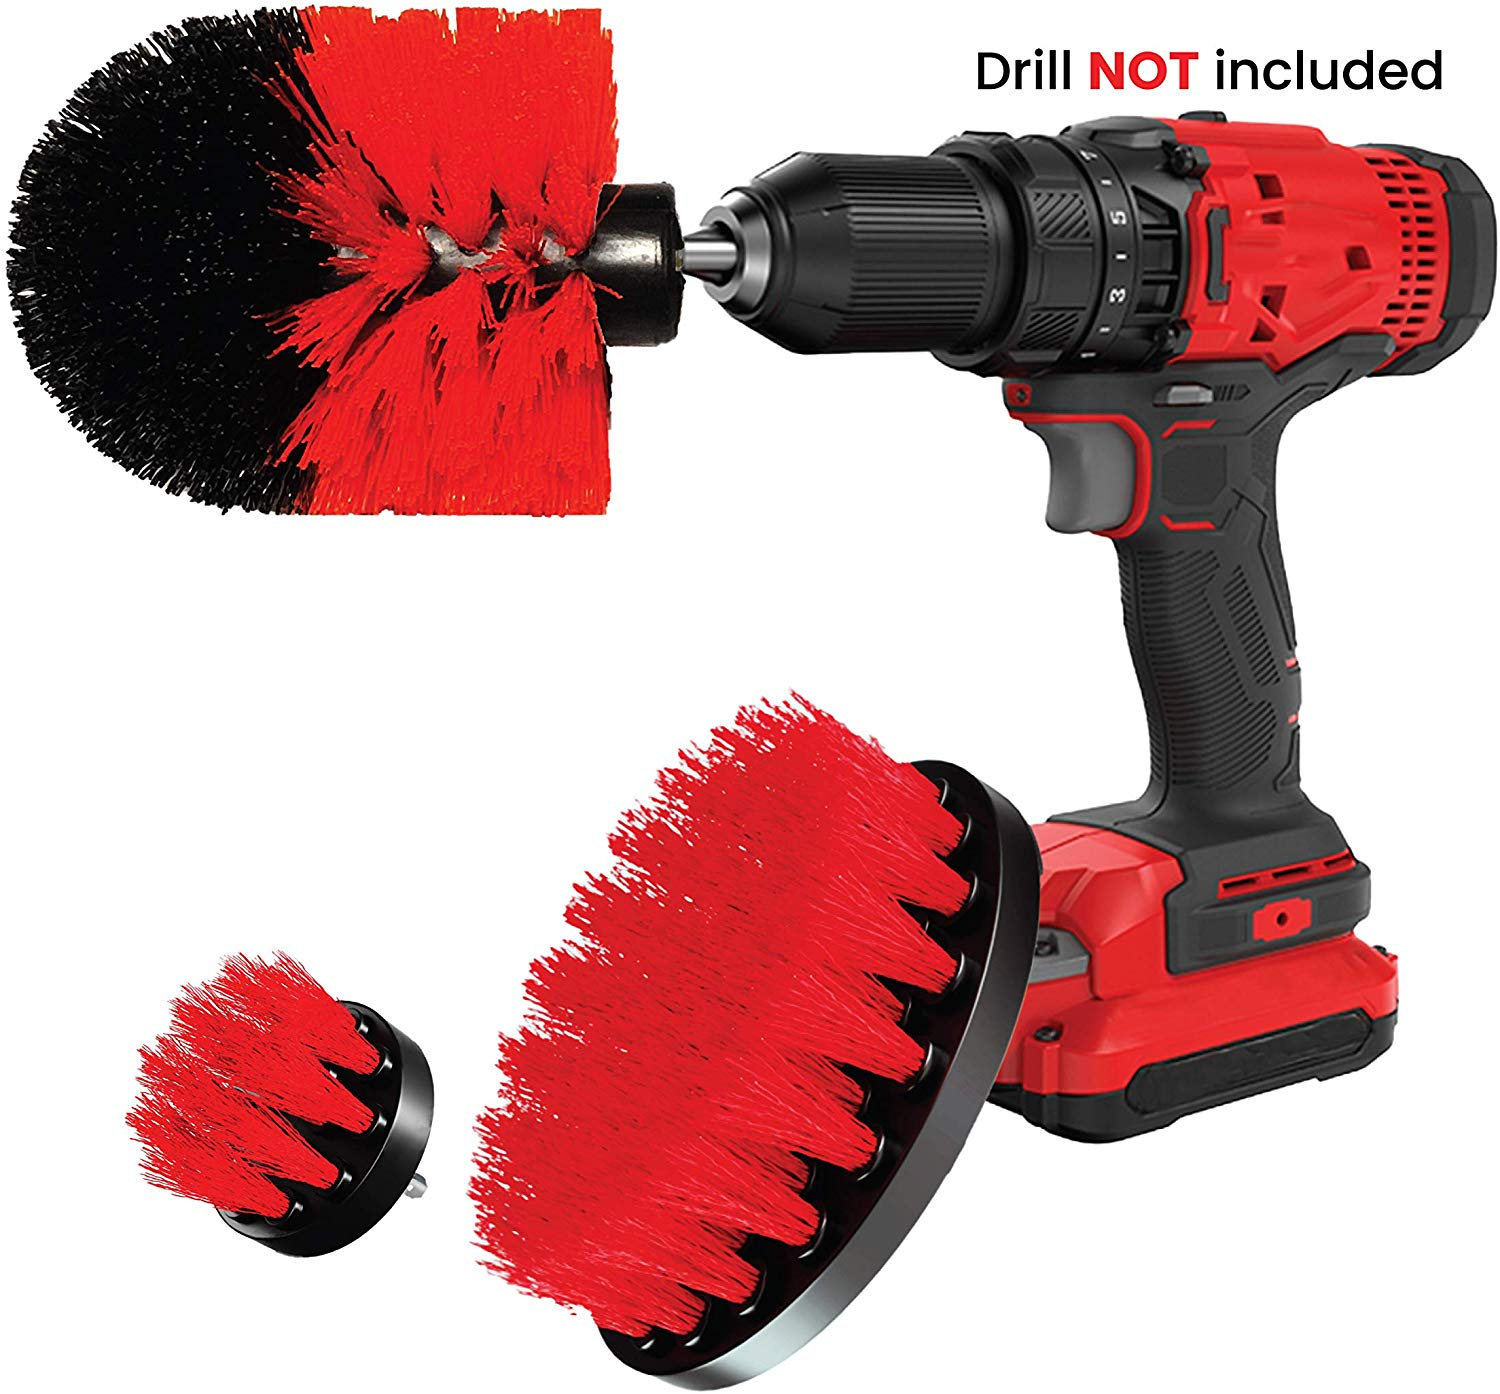 Drill Brush Set Attachment Kit - Pack of 3